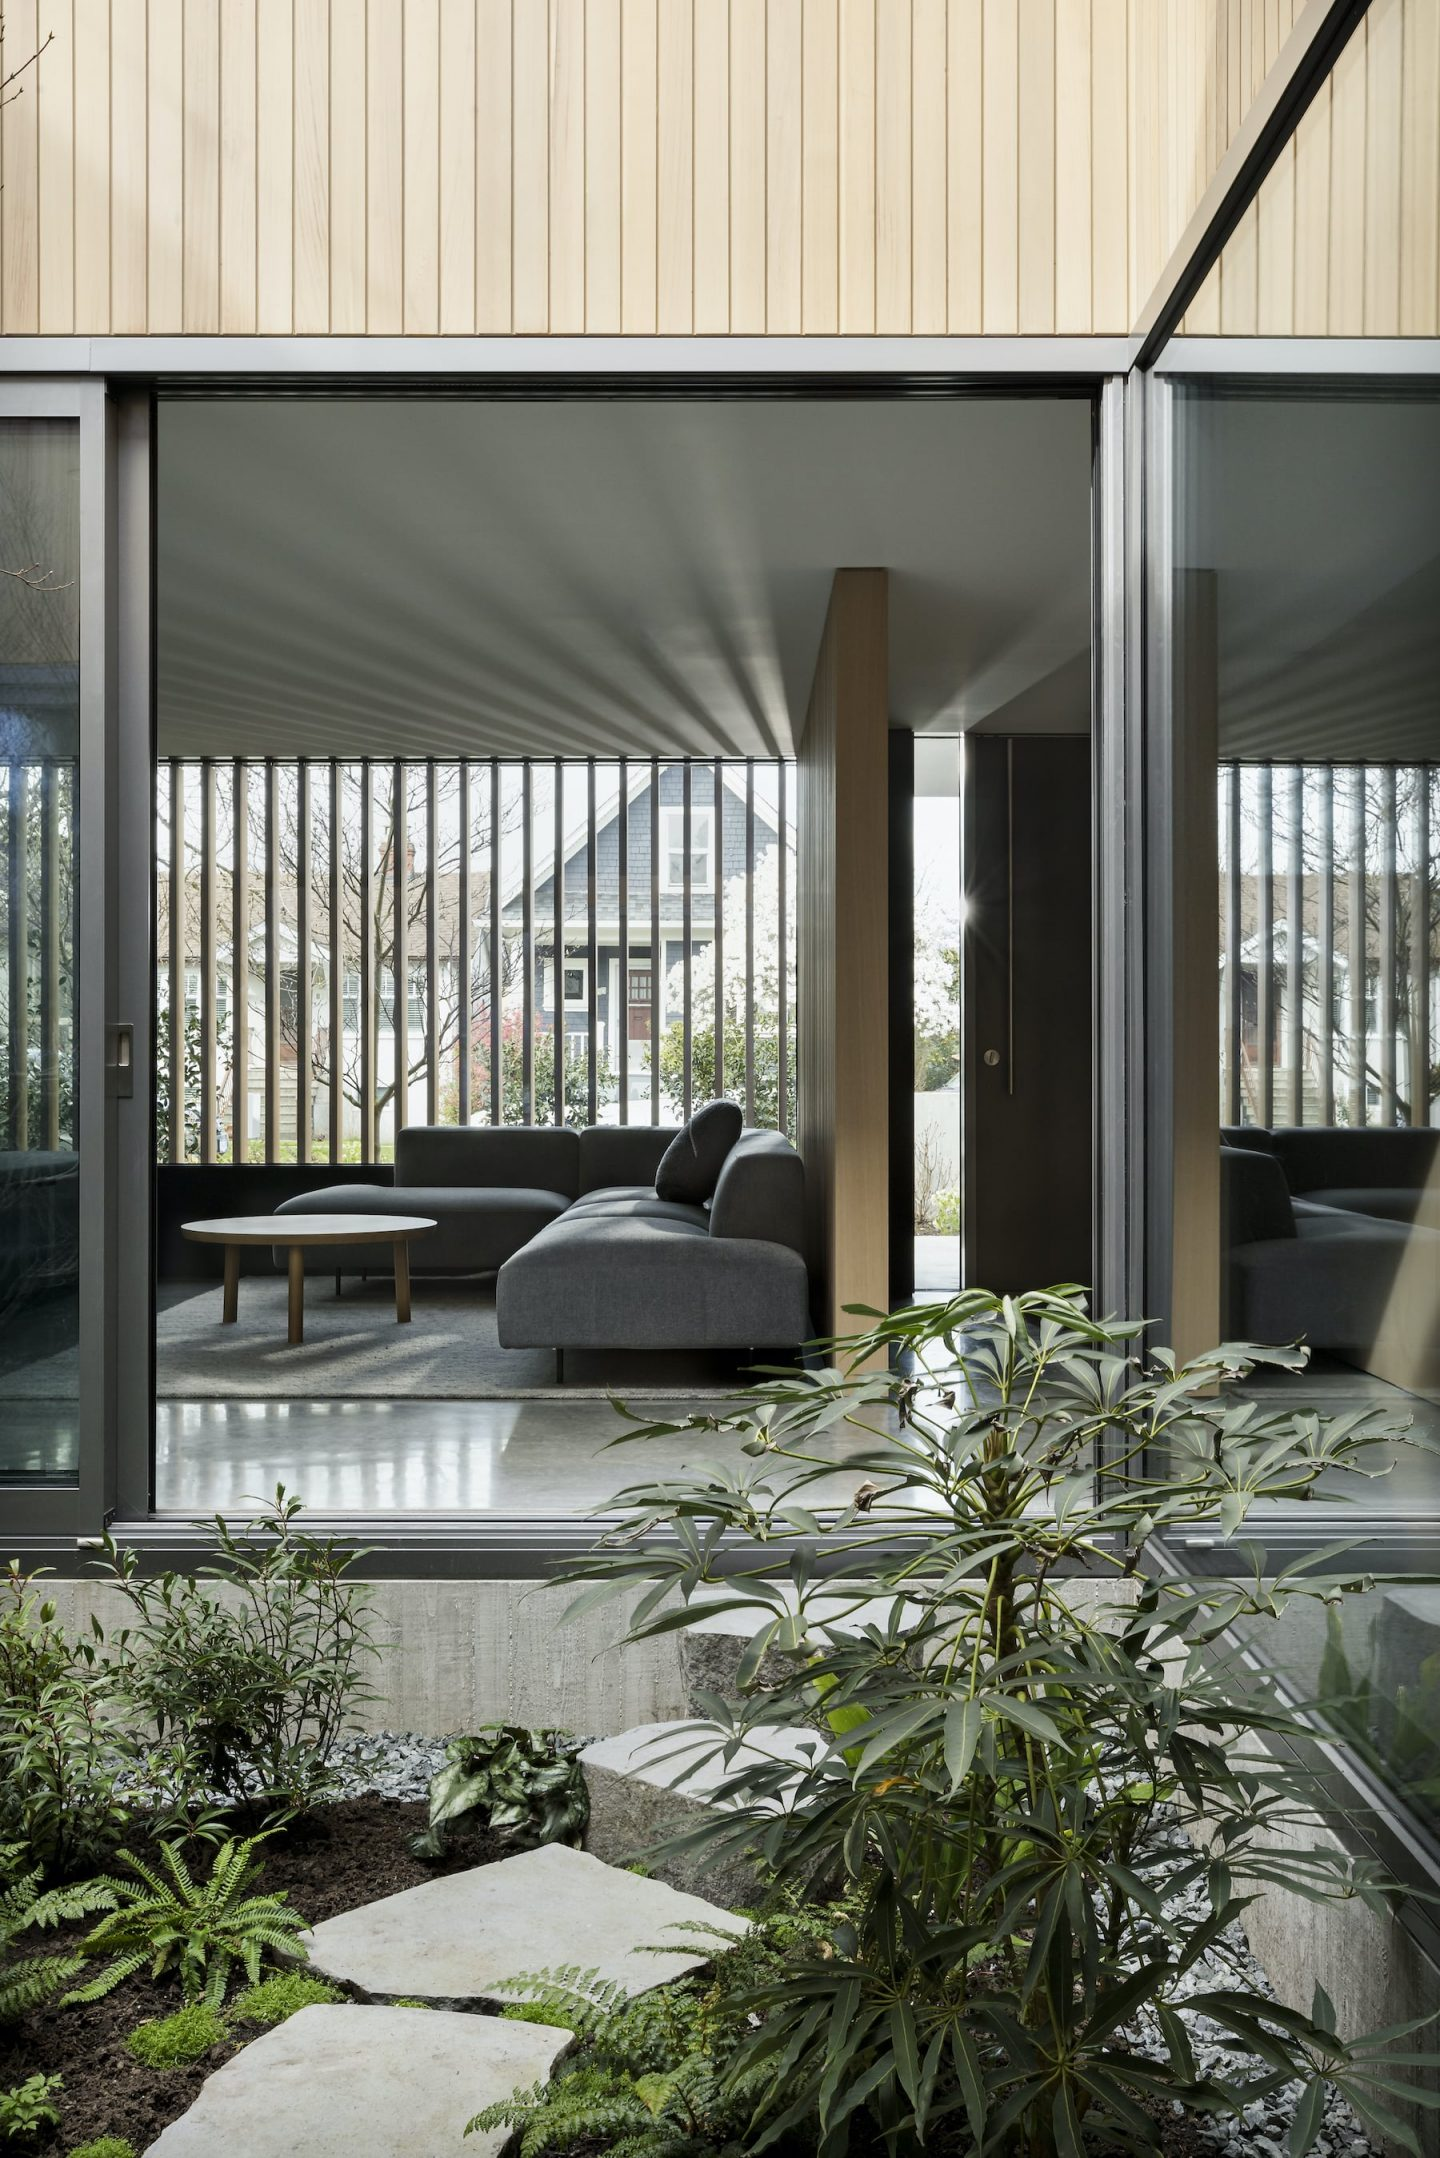 IGNANT-Architecture-Leckie-Studio-Courtyard-House-09